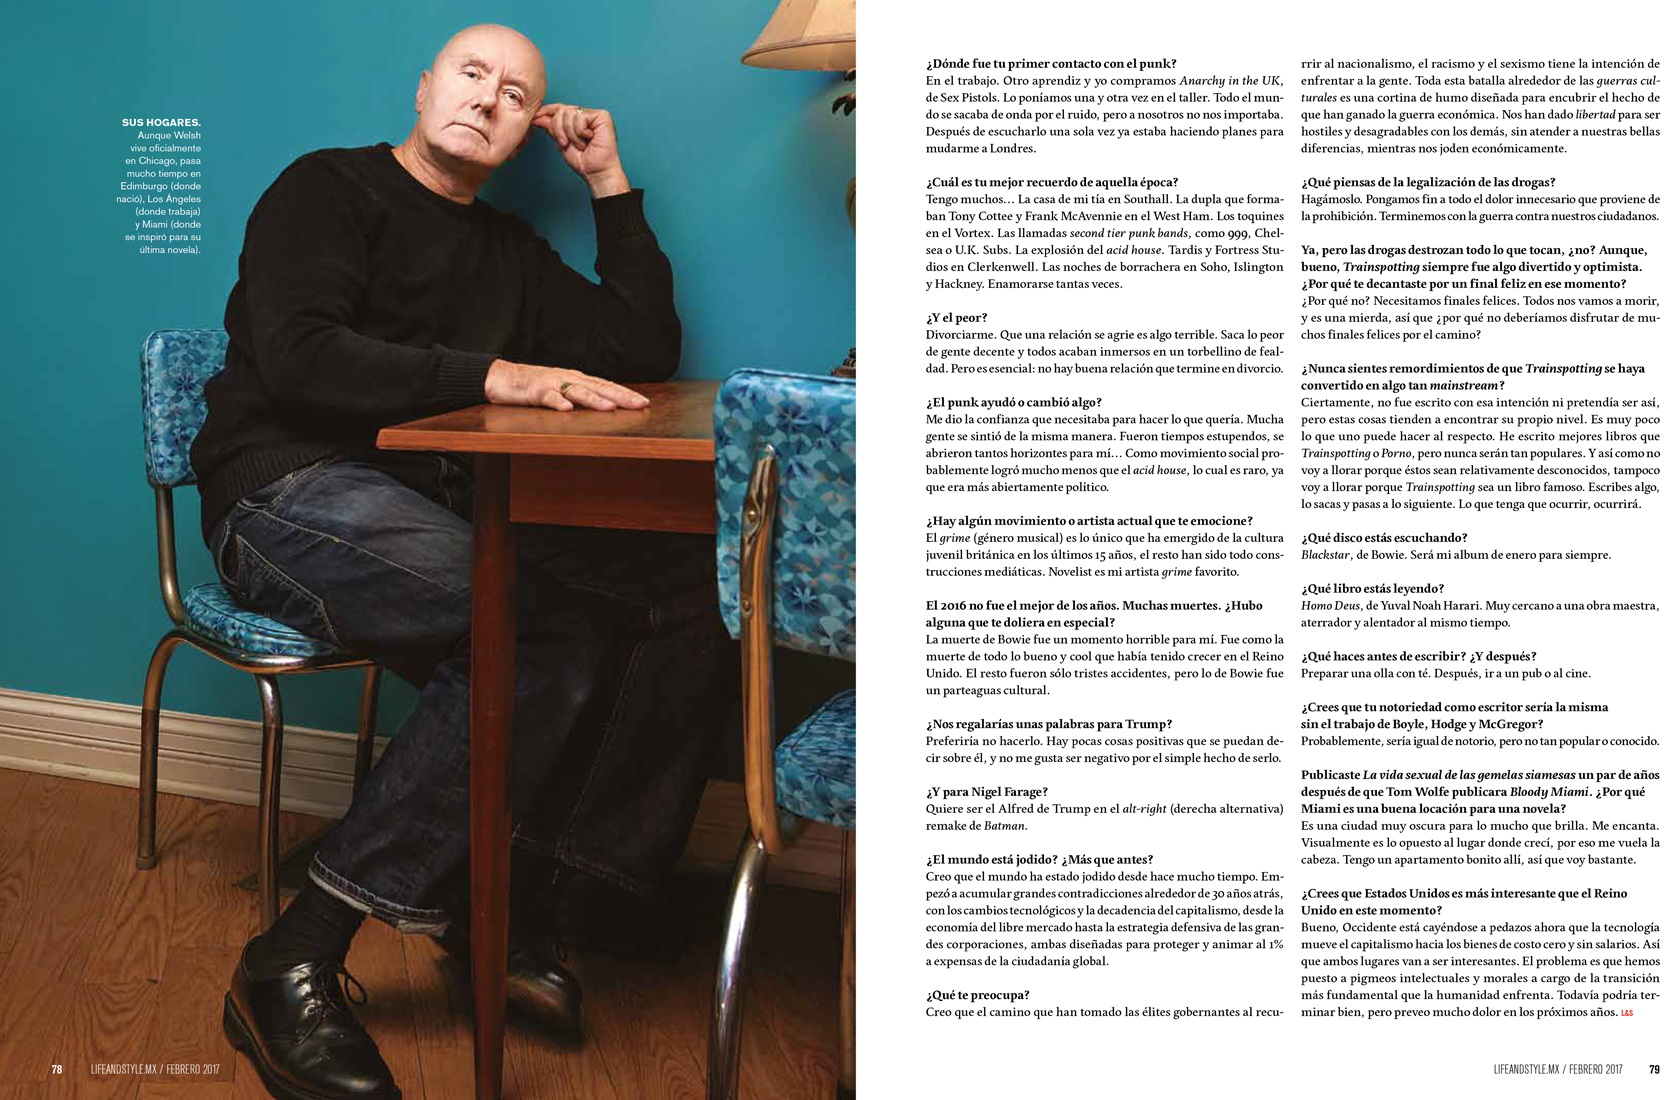 Irvine Welsh - Life&Style